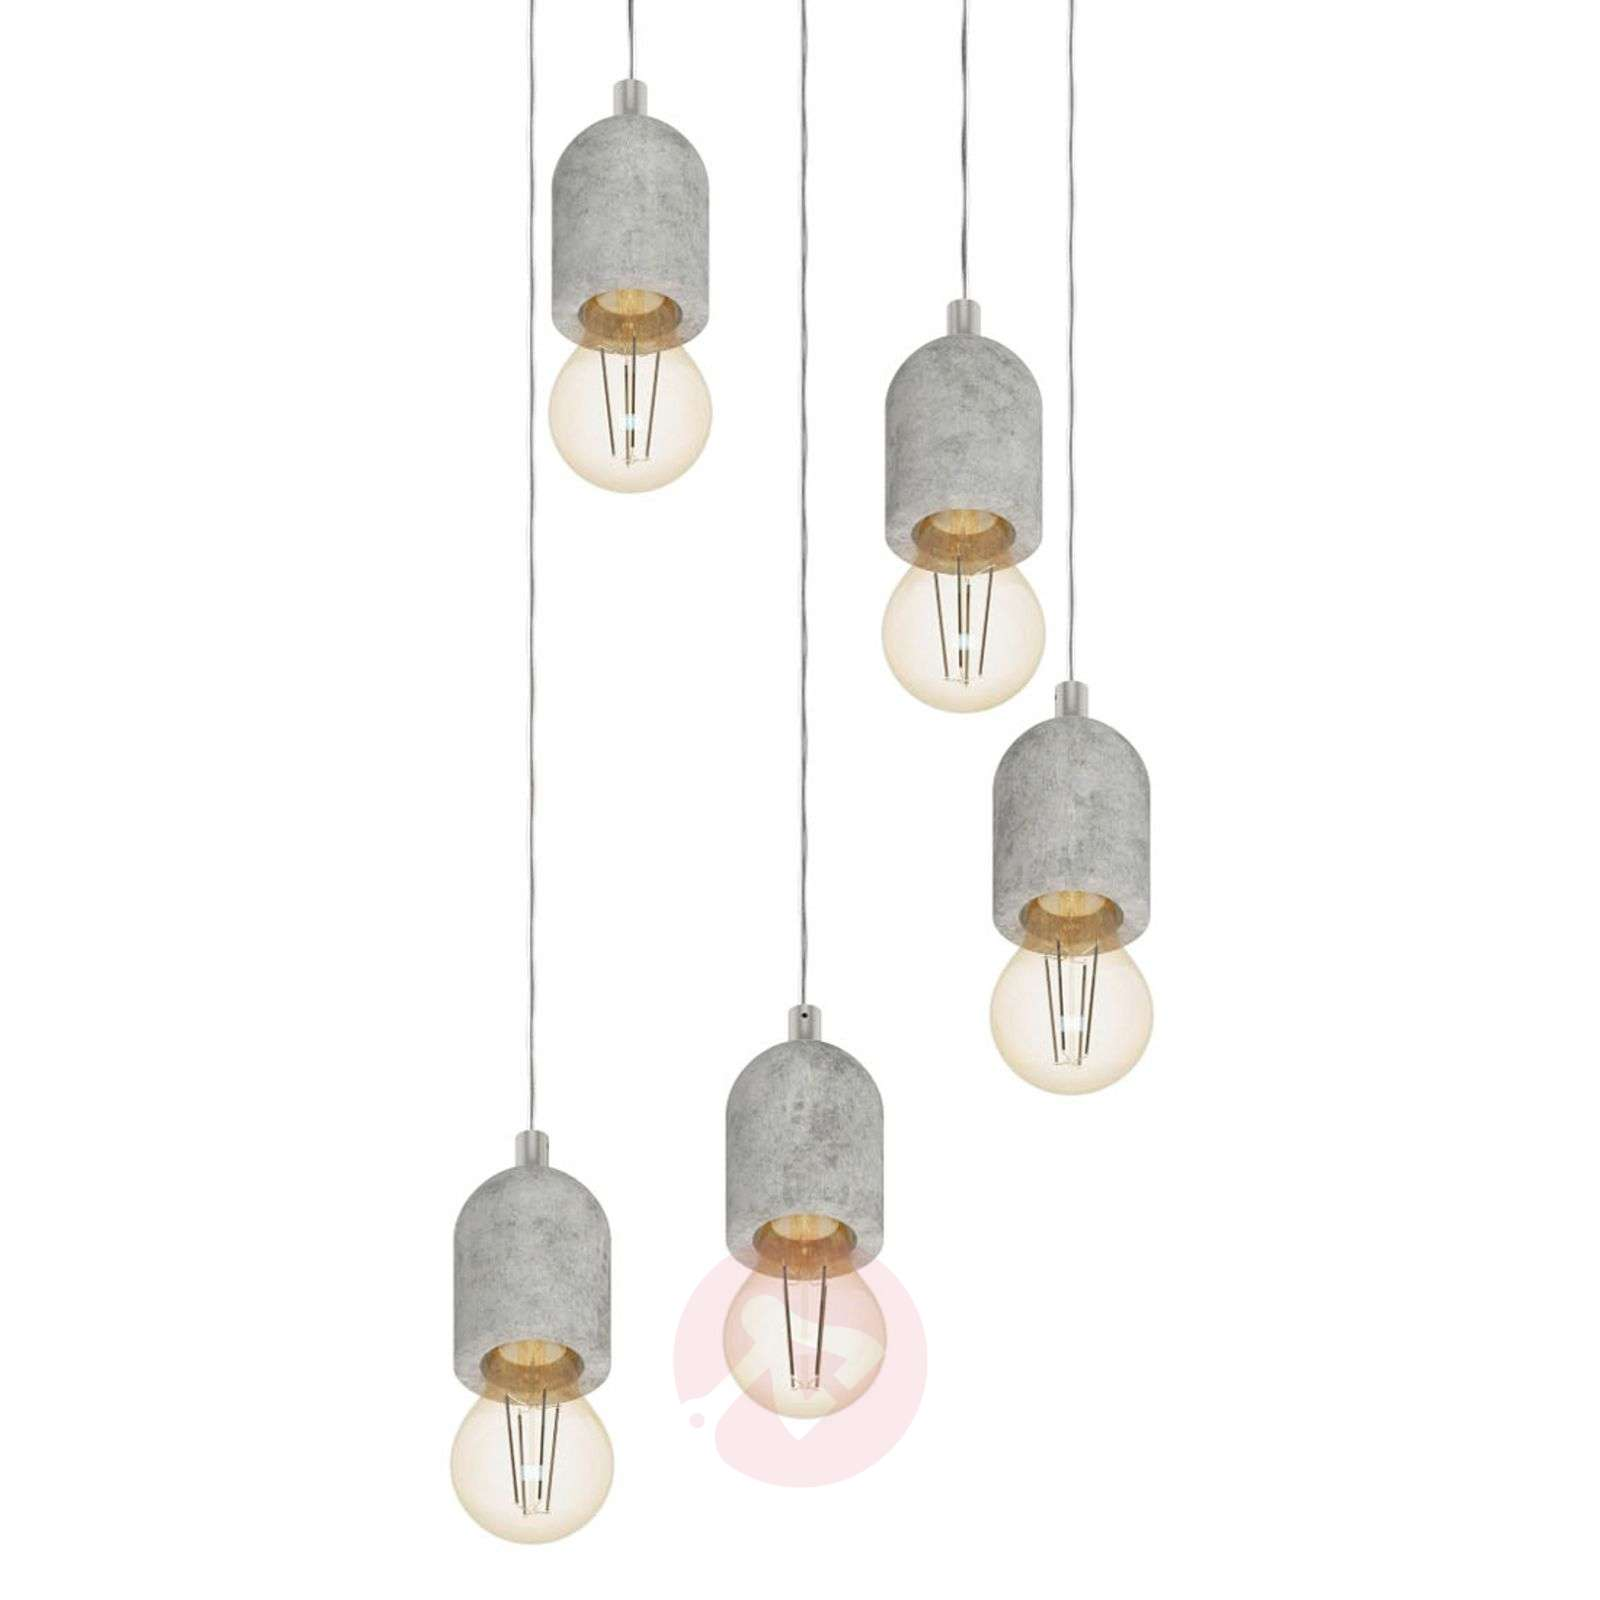 Five-bulb Silvares pendant light-3031818-01